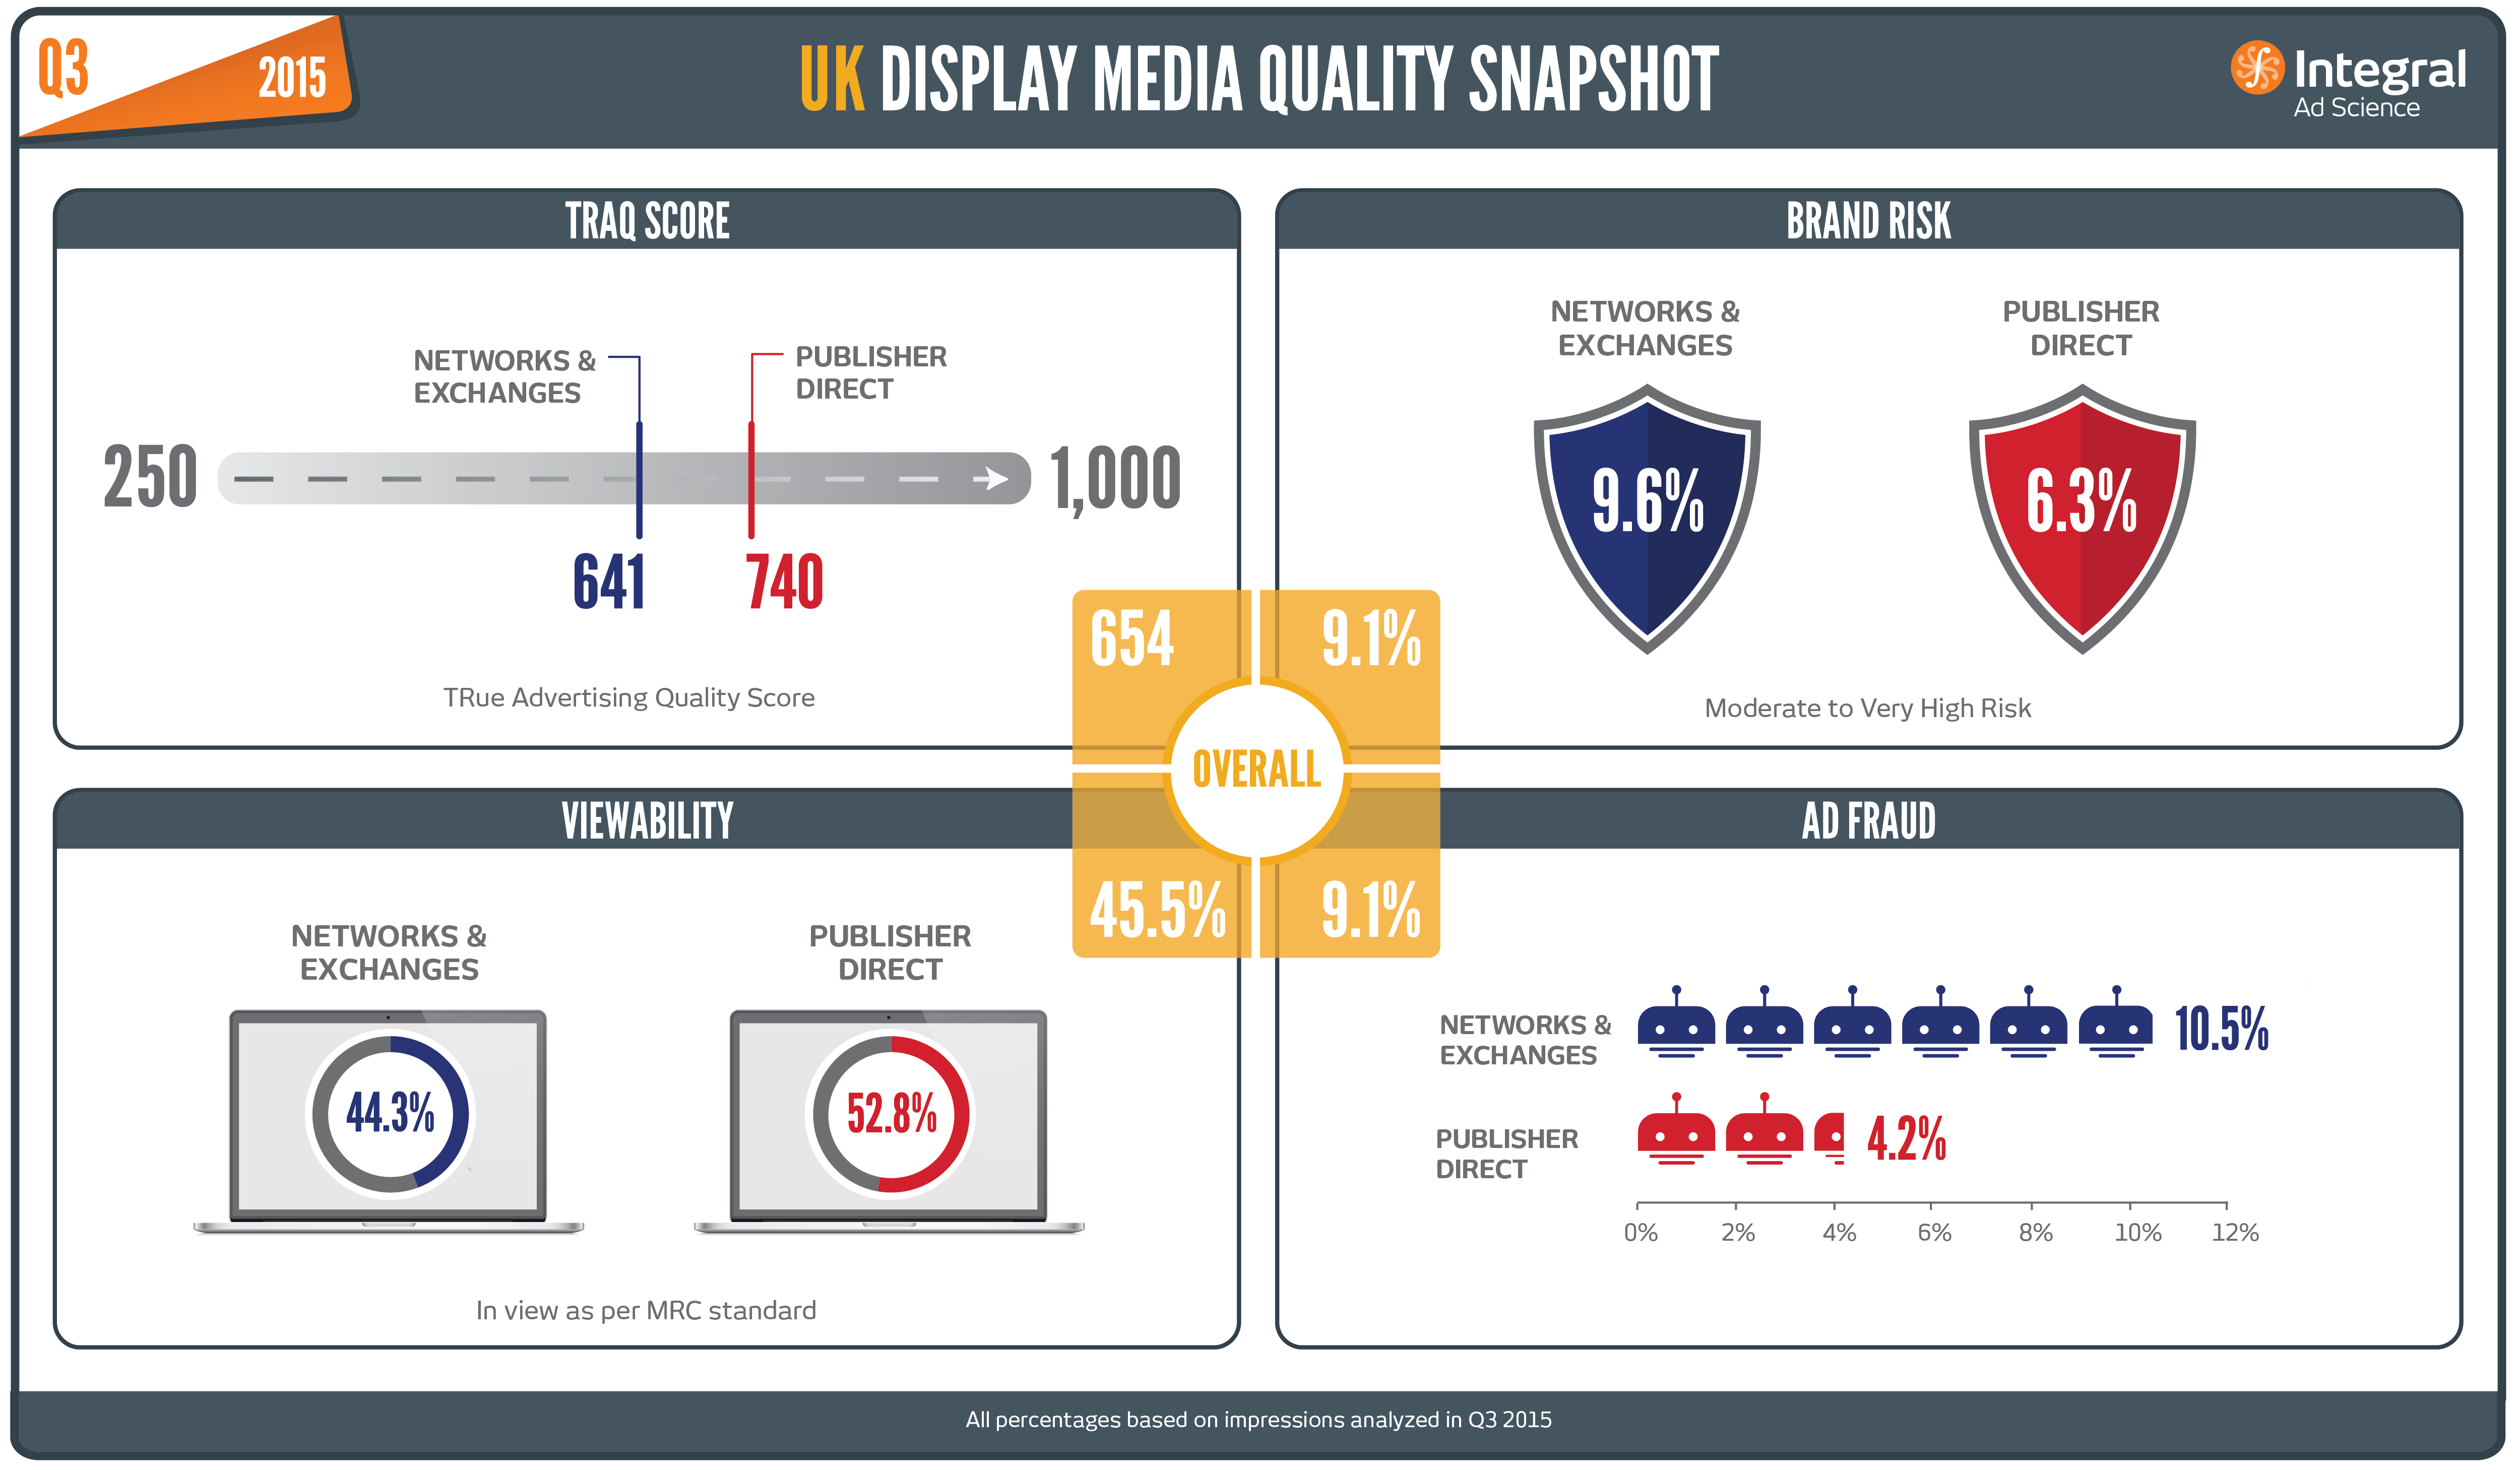 Less Than Half of Ads in Q3 Were Viewable